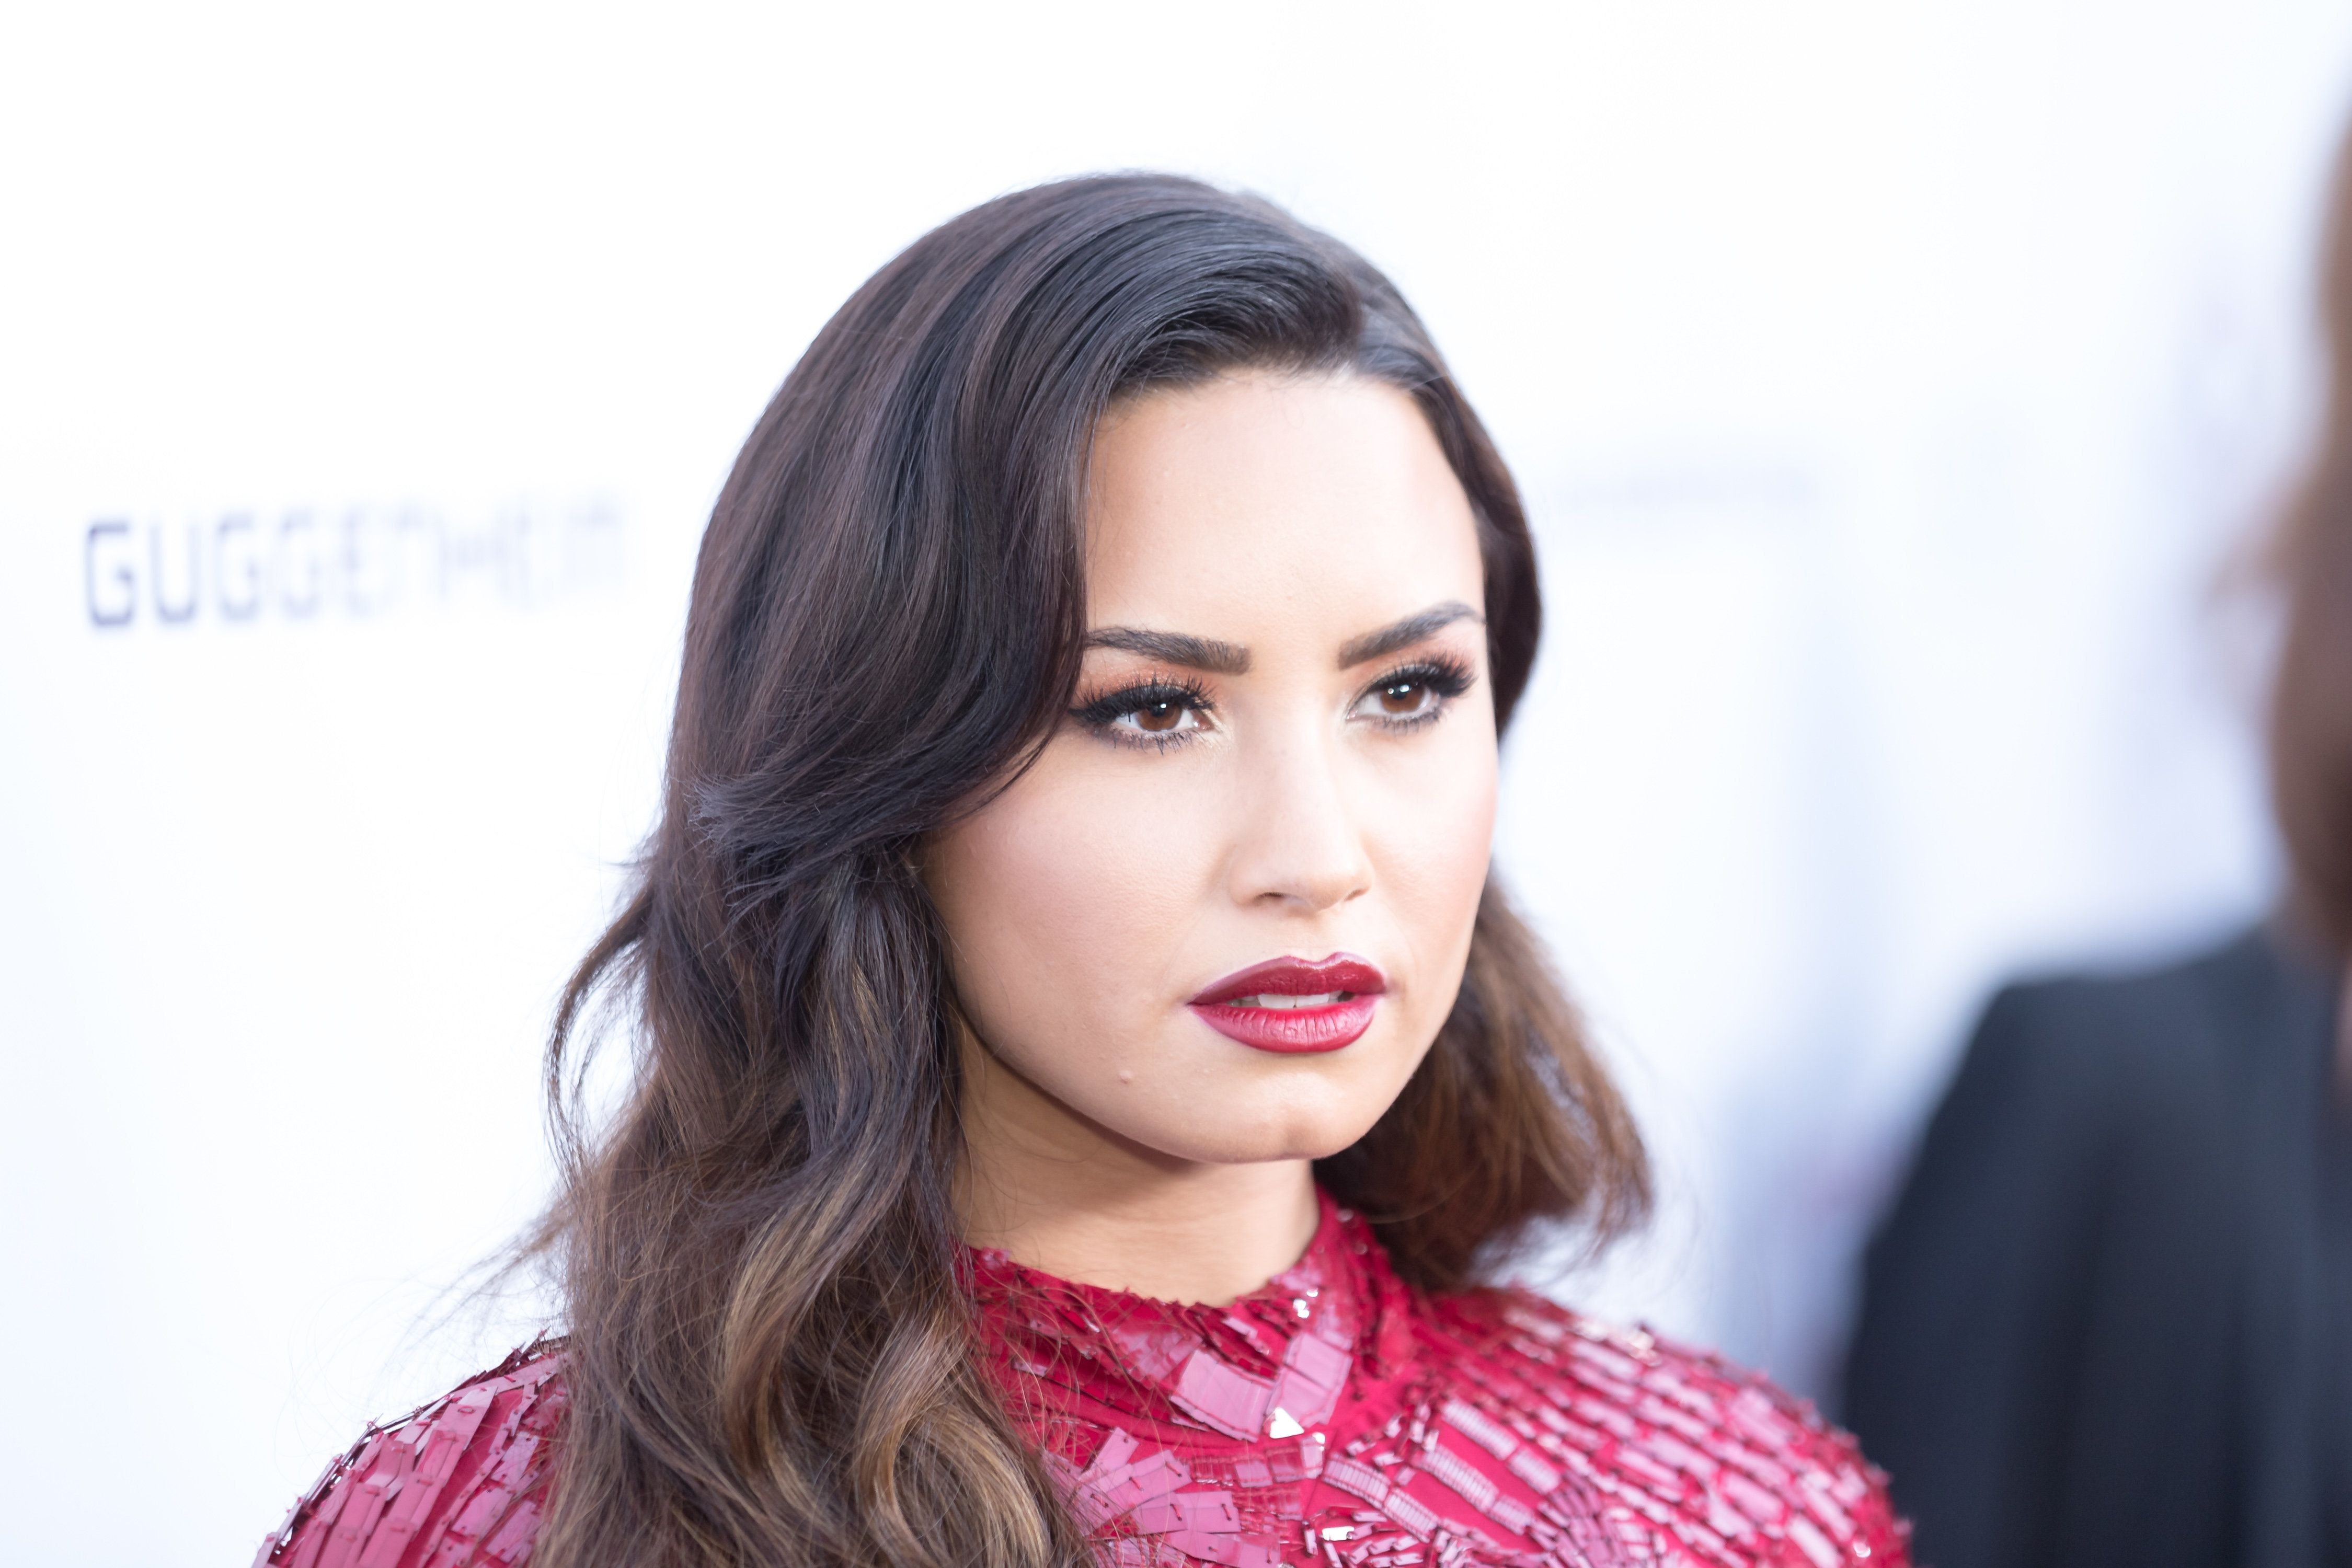 Who is demi lovato dating may 2019 emails